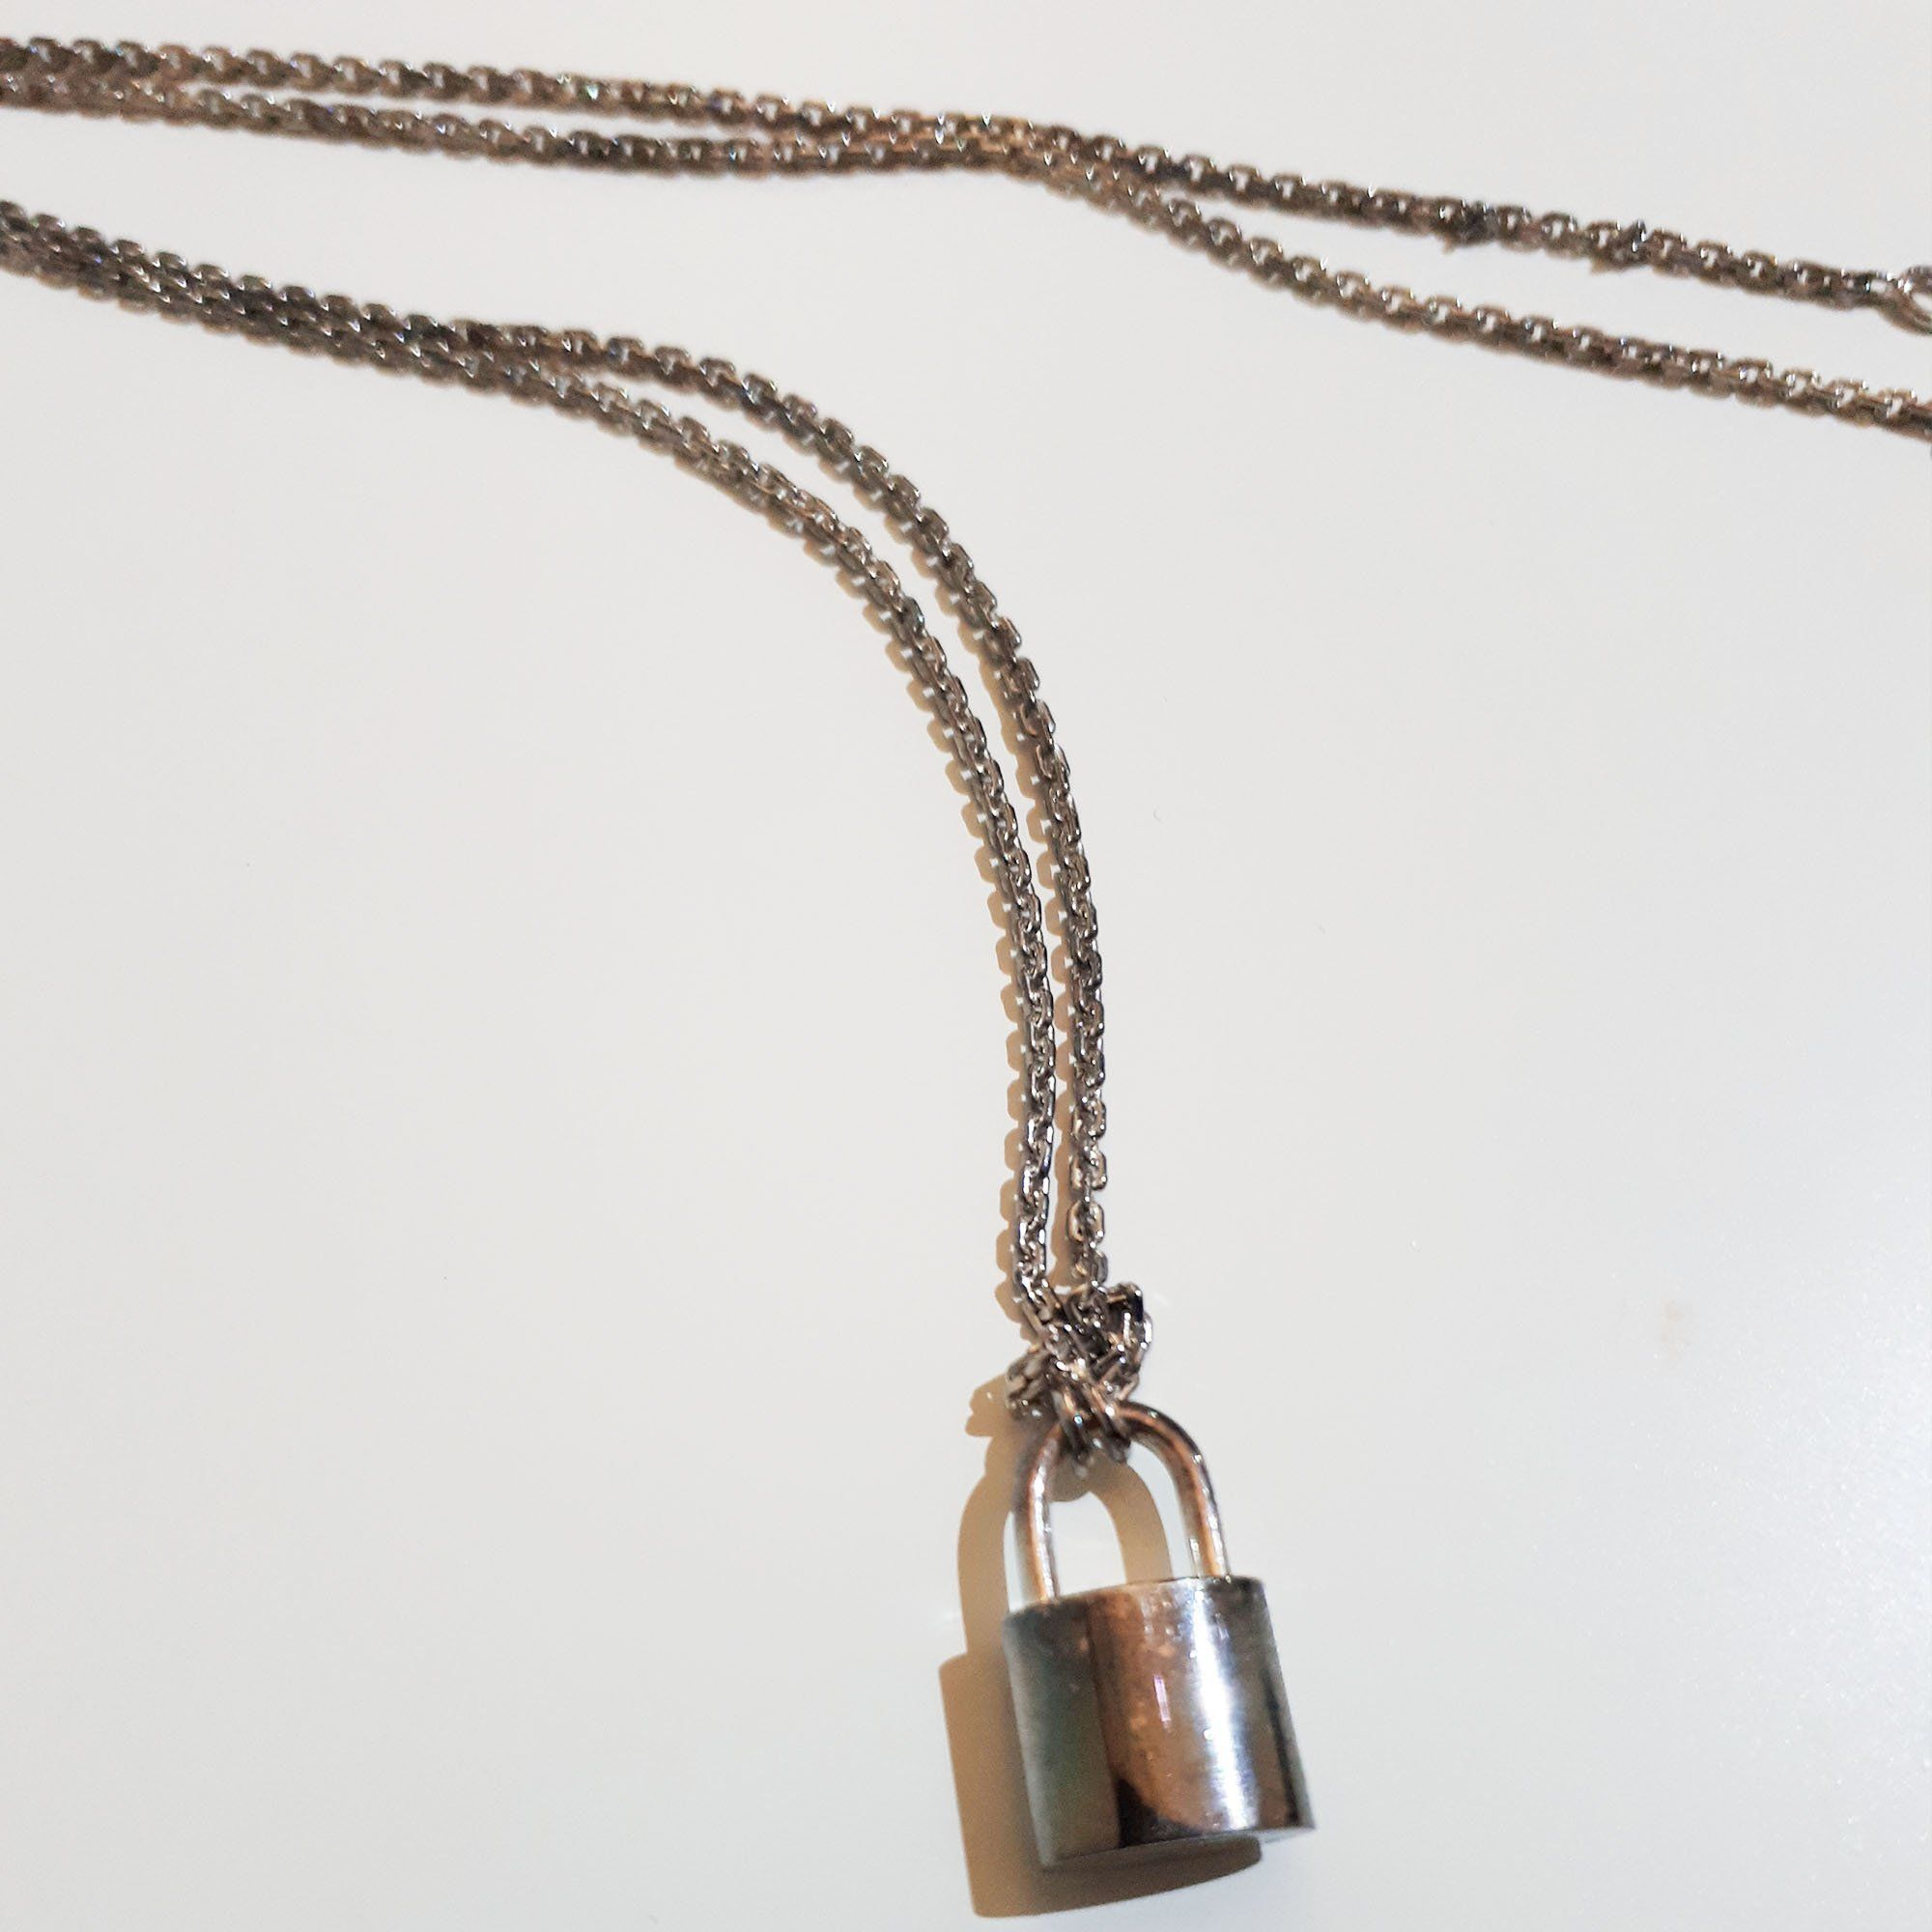 Louis Vuitton Silver Lockit Pendant Sterling Silver Necklace